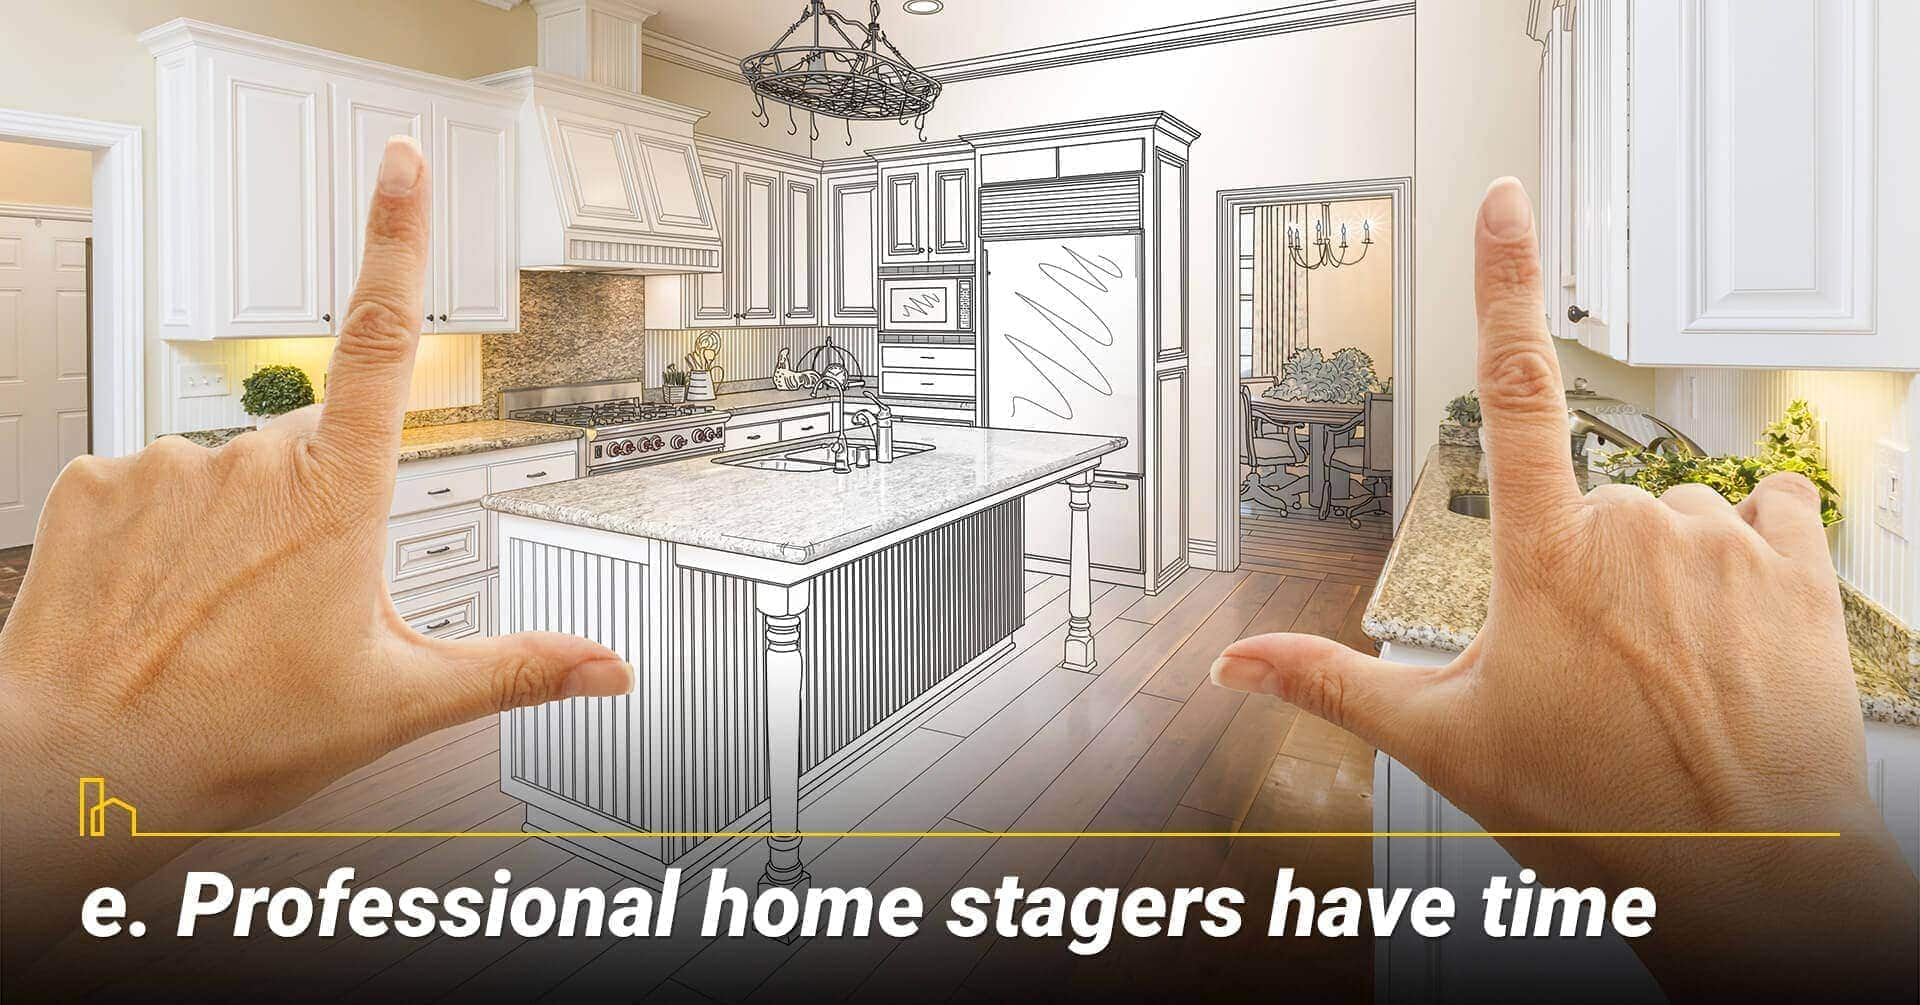 Professional home stagers have time